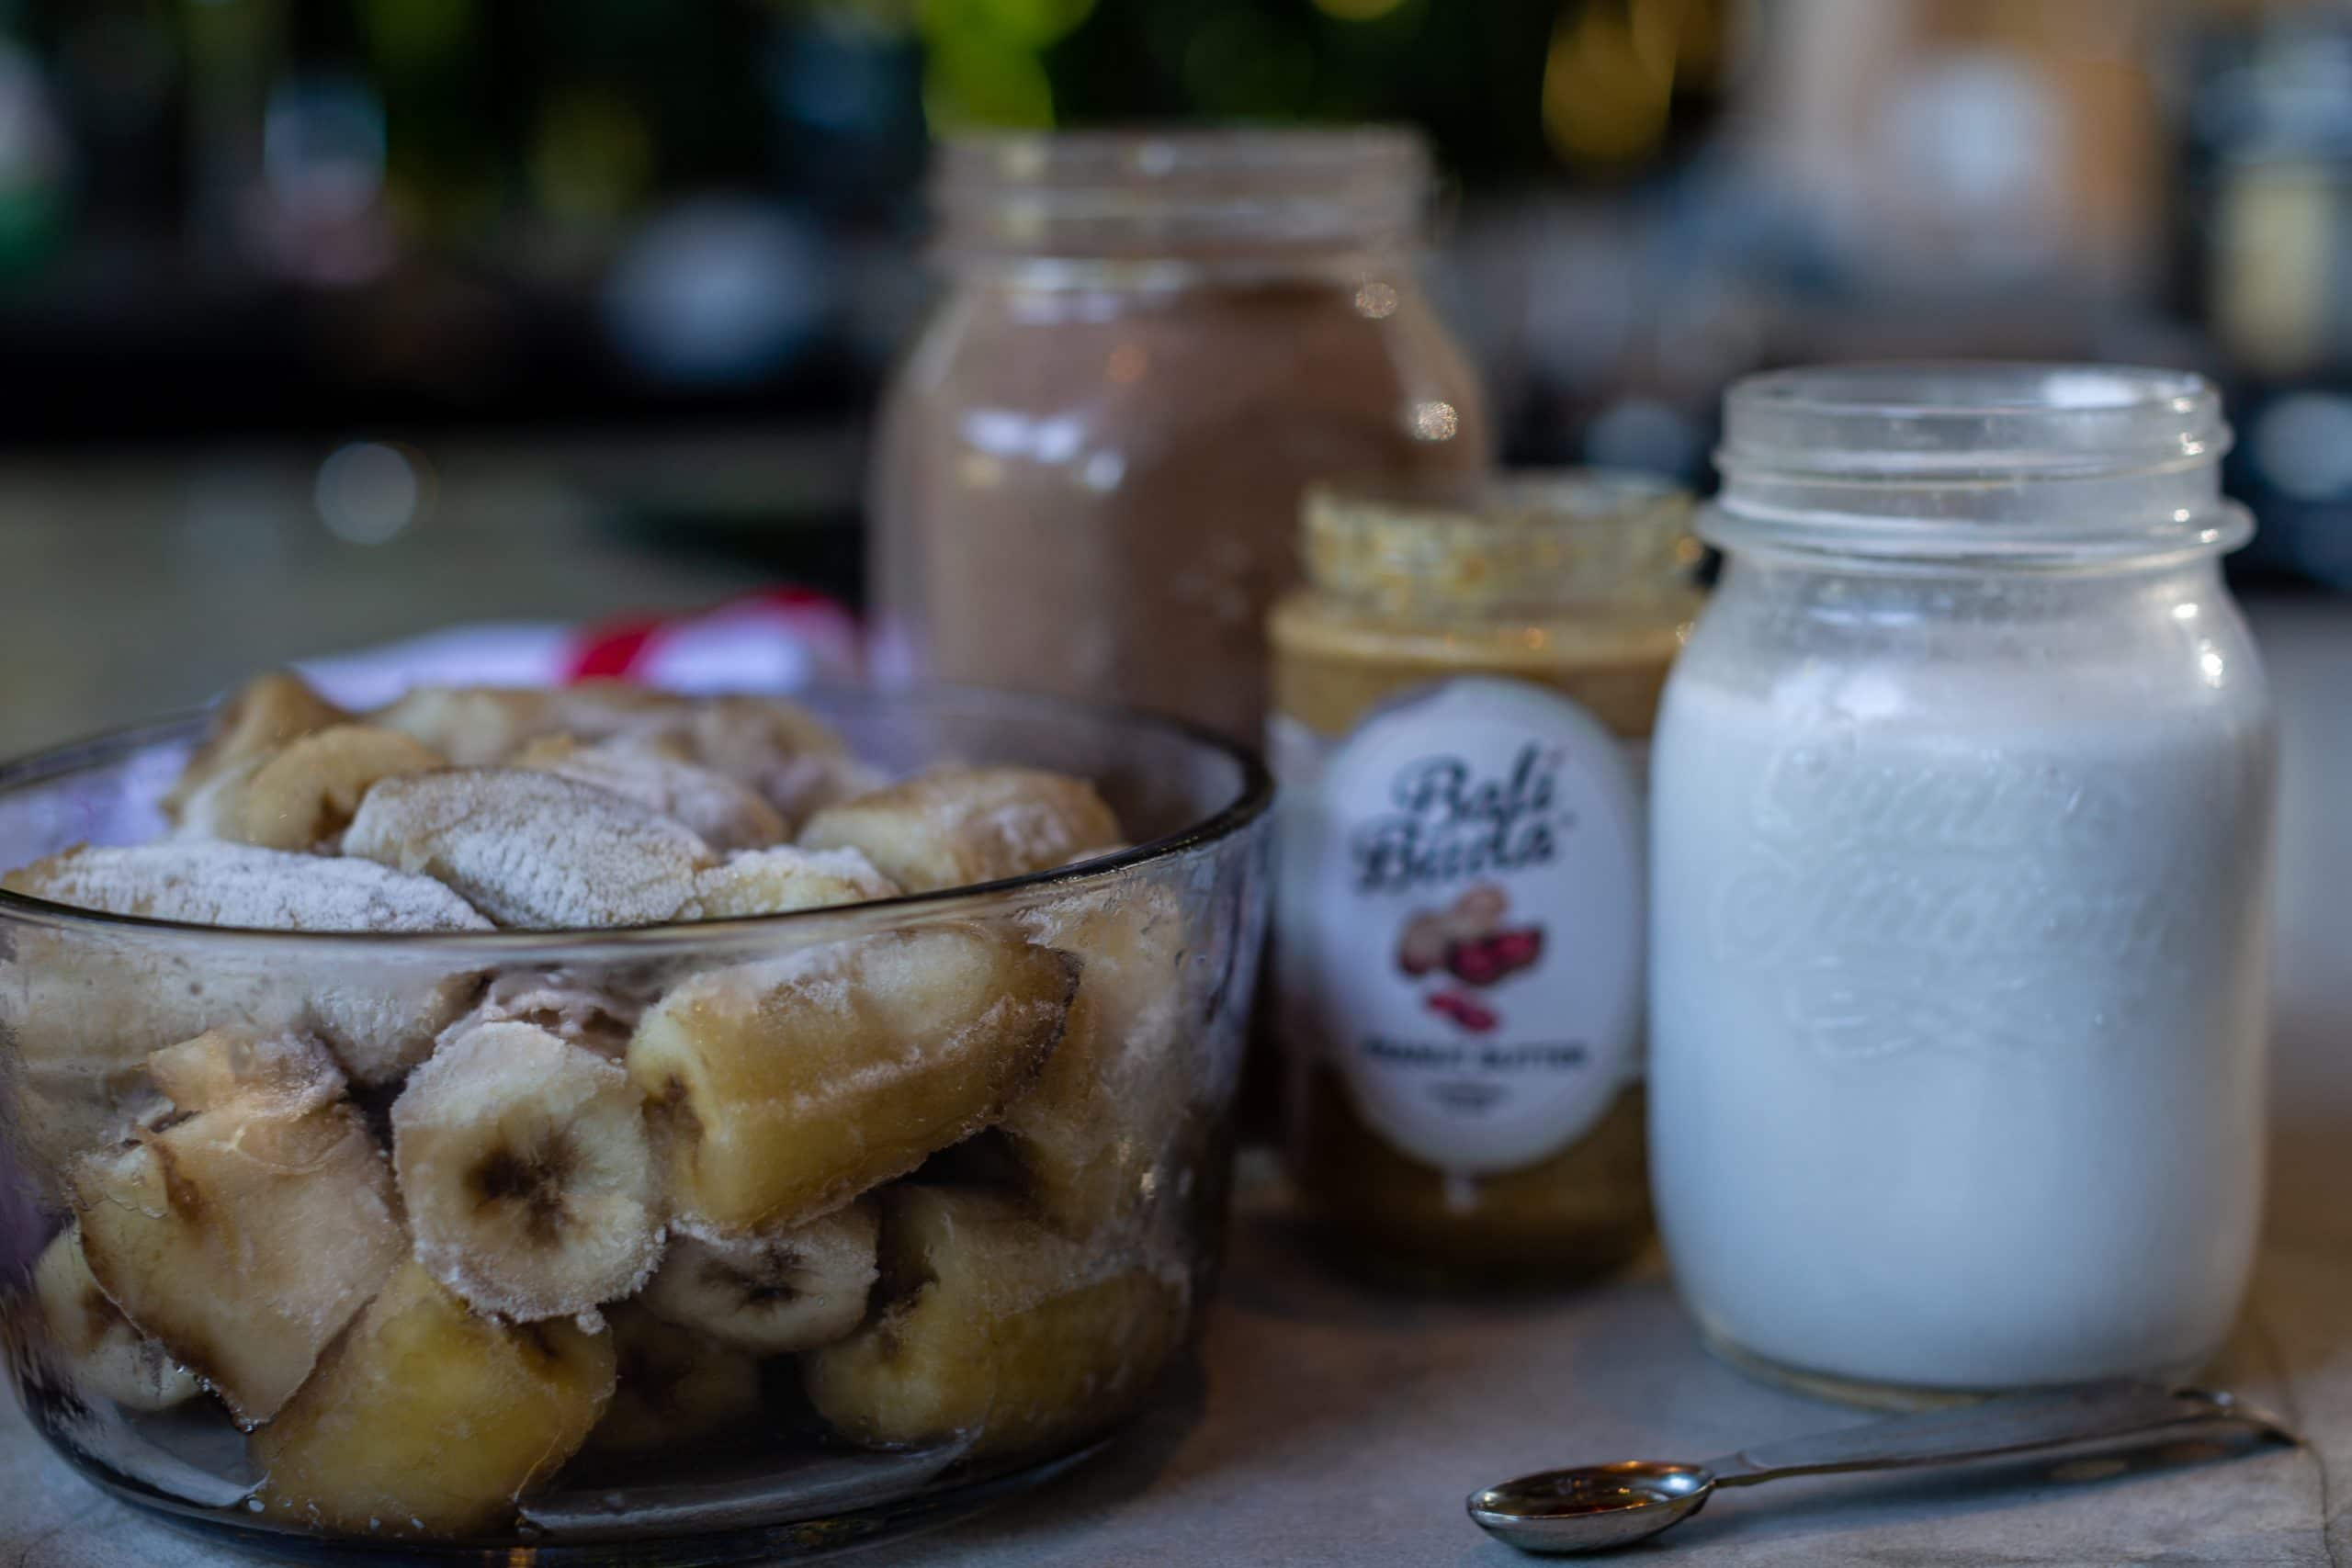 Chocolate Peanut Butter Smoothie Ingredients